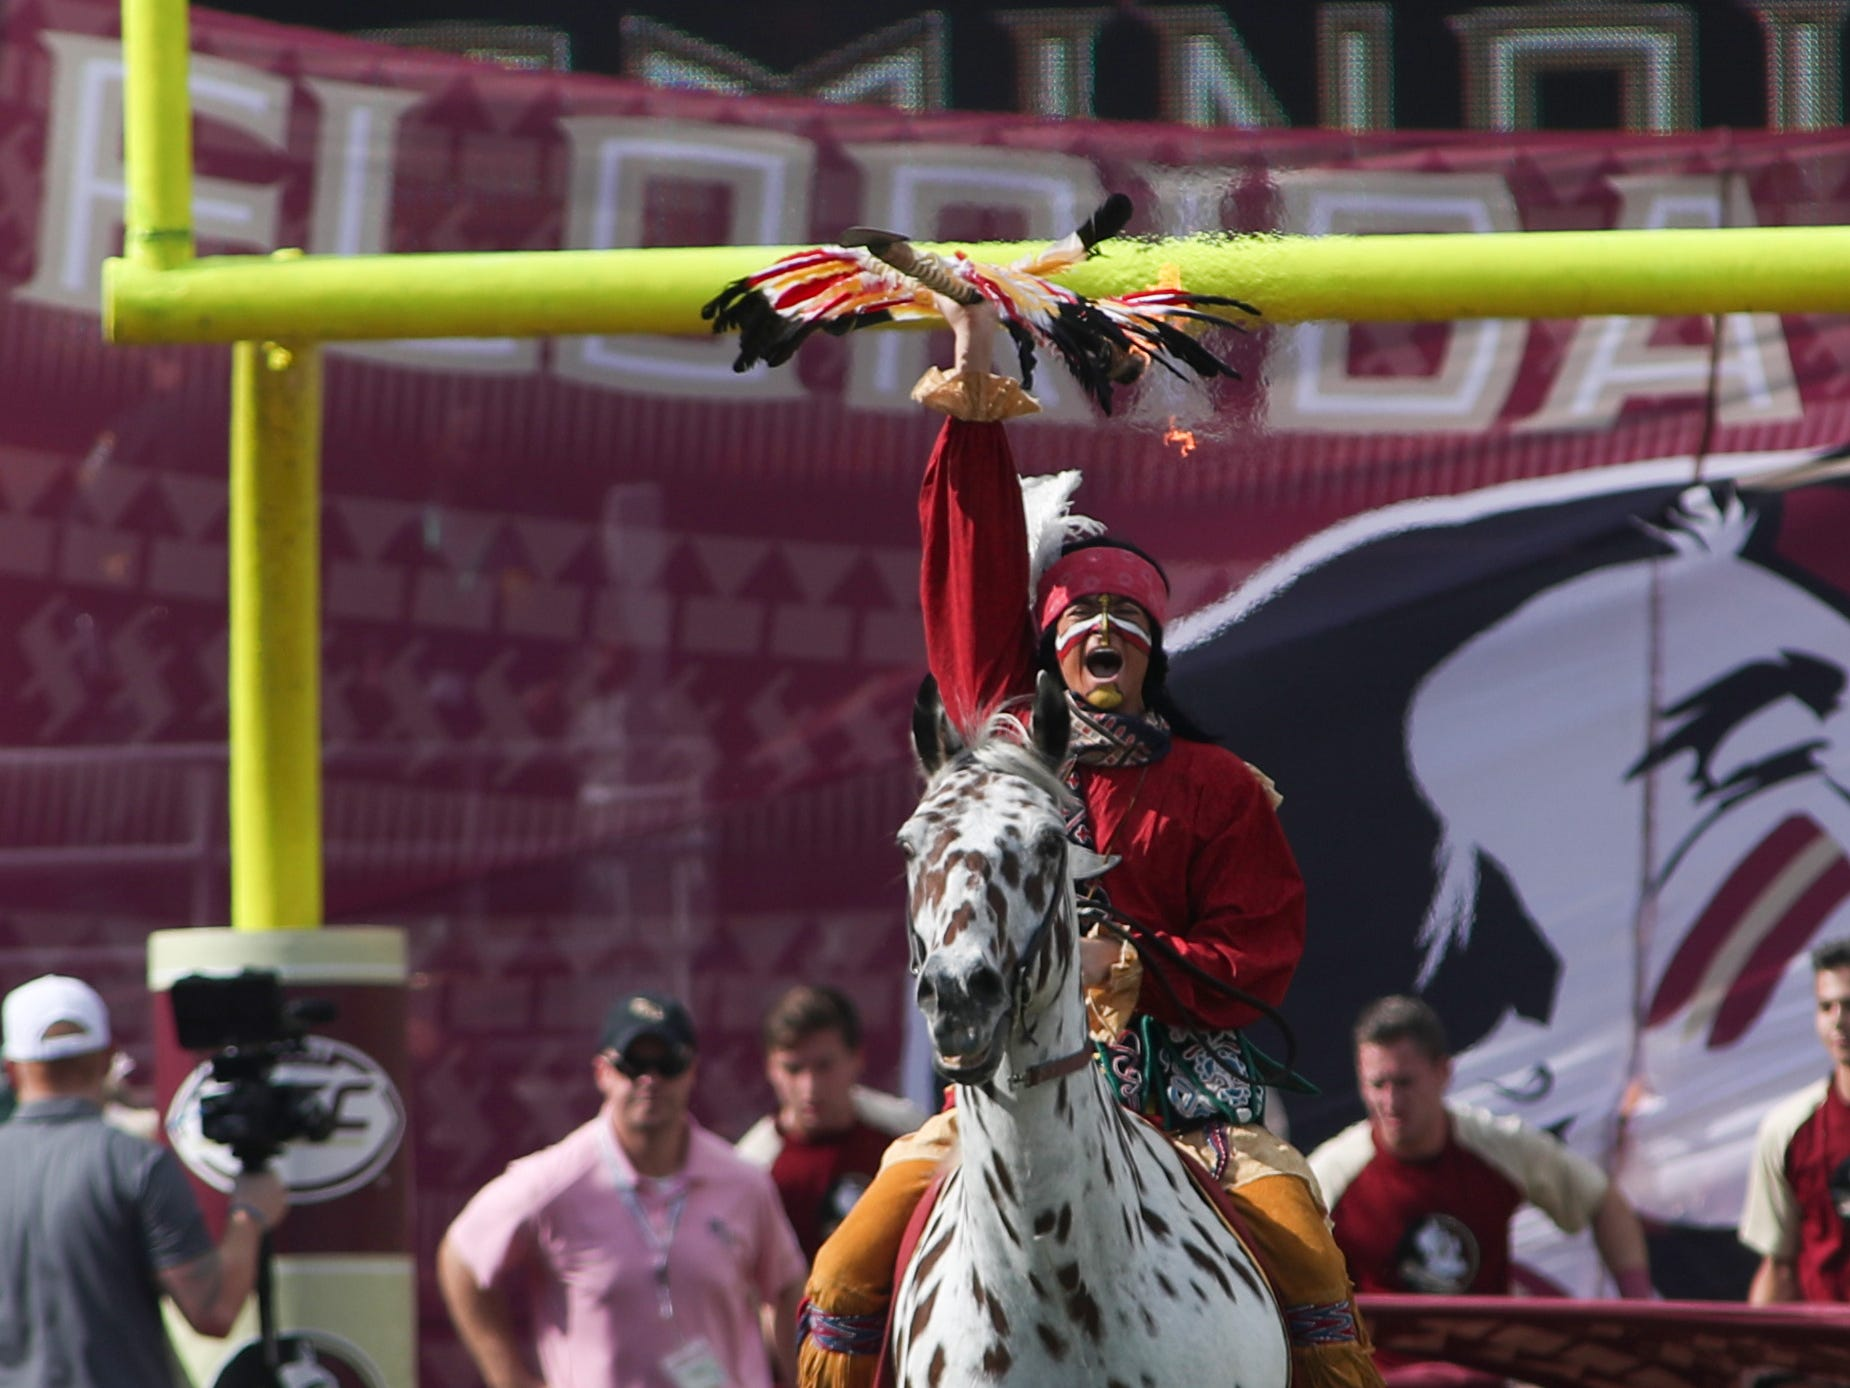 FSU's Chief Osceola and Renegade enter the field before FSU's homecoming game against Wake Forest at Doak S. Campbell Stadium Saturday, Oct. 20, 2018.